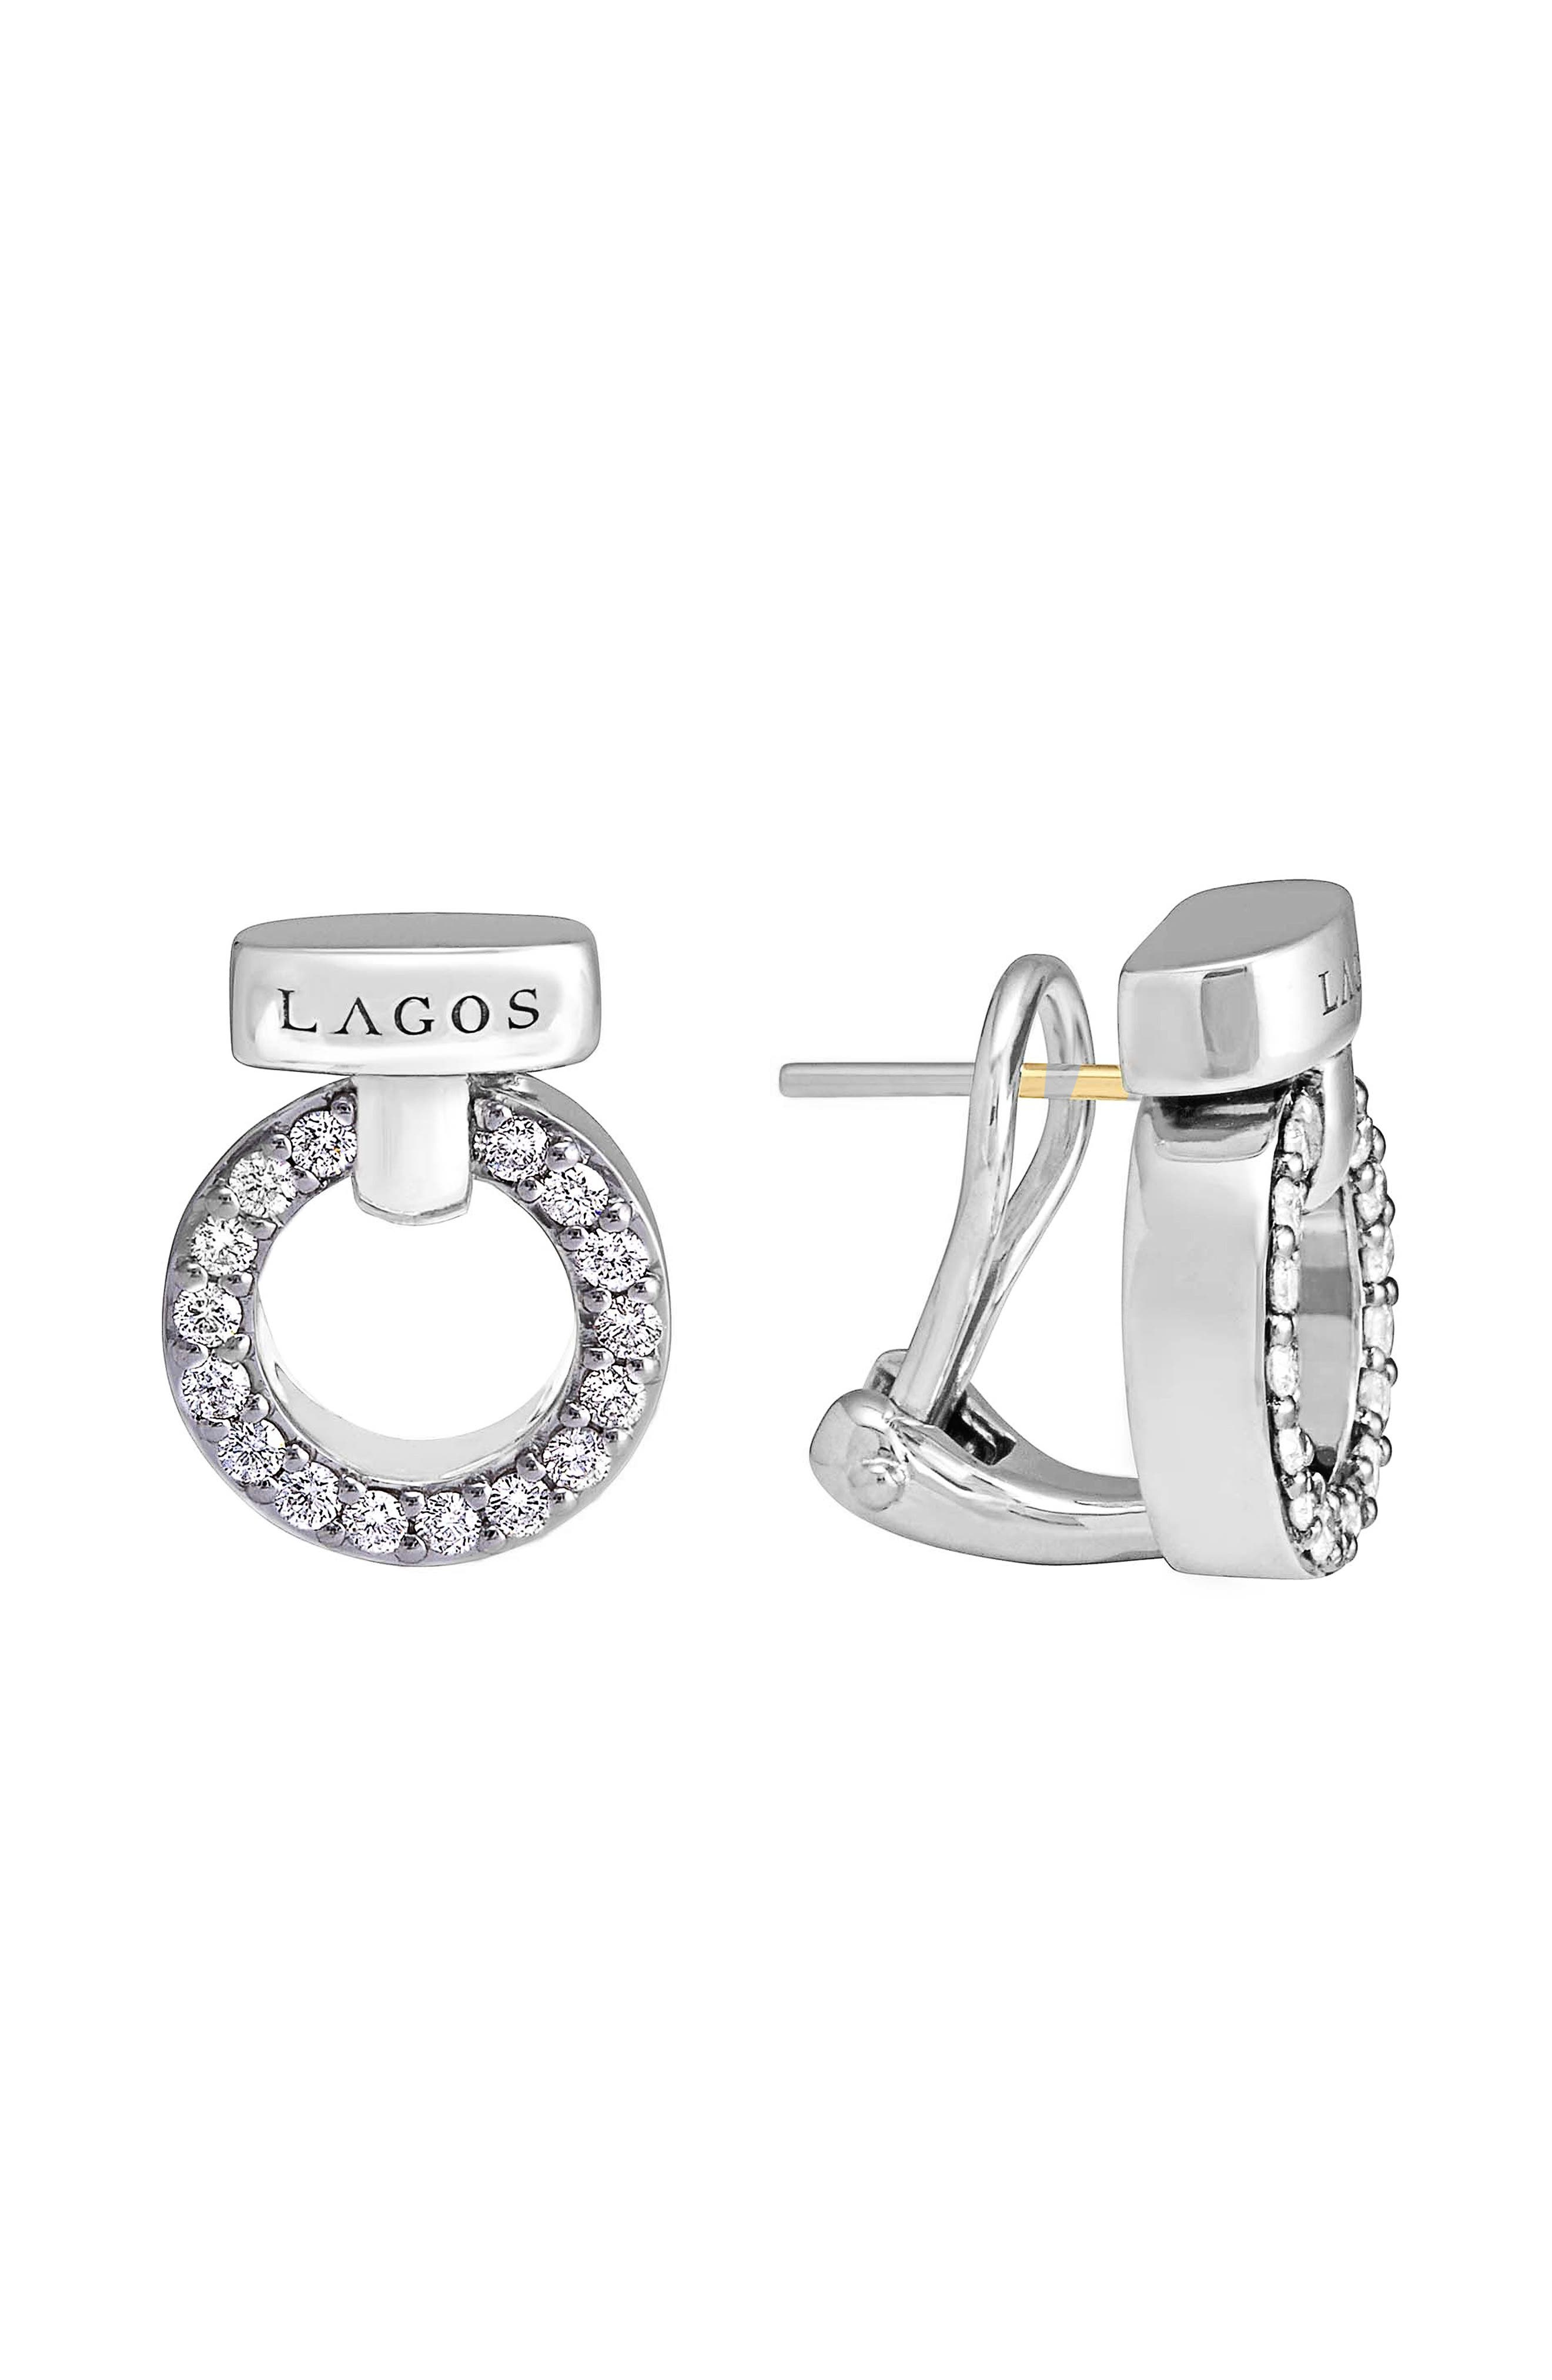 LAGOS Enso - Circle Game Diamond Stud Earrings